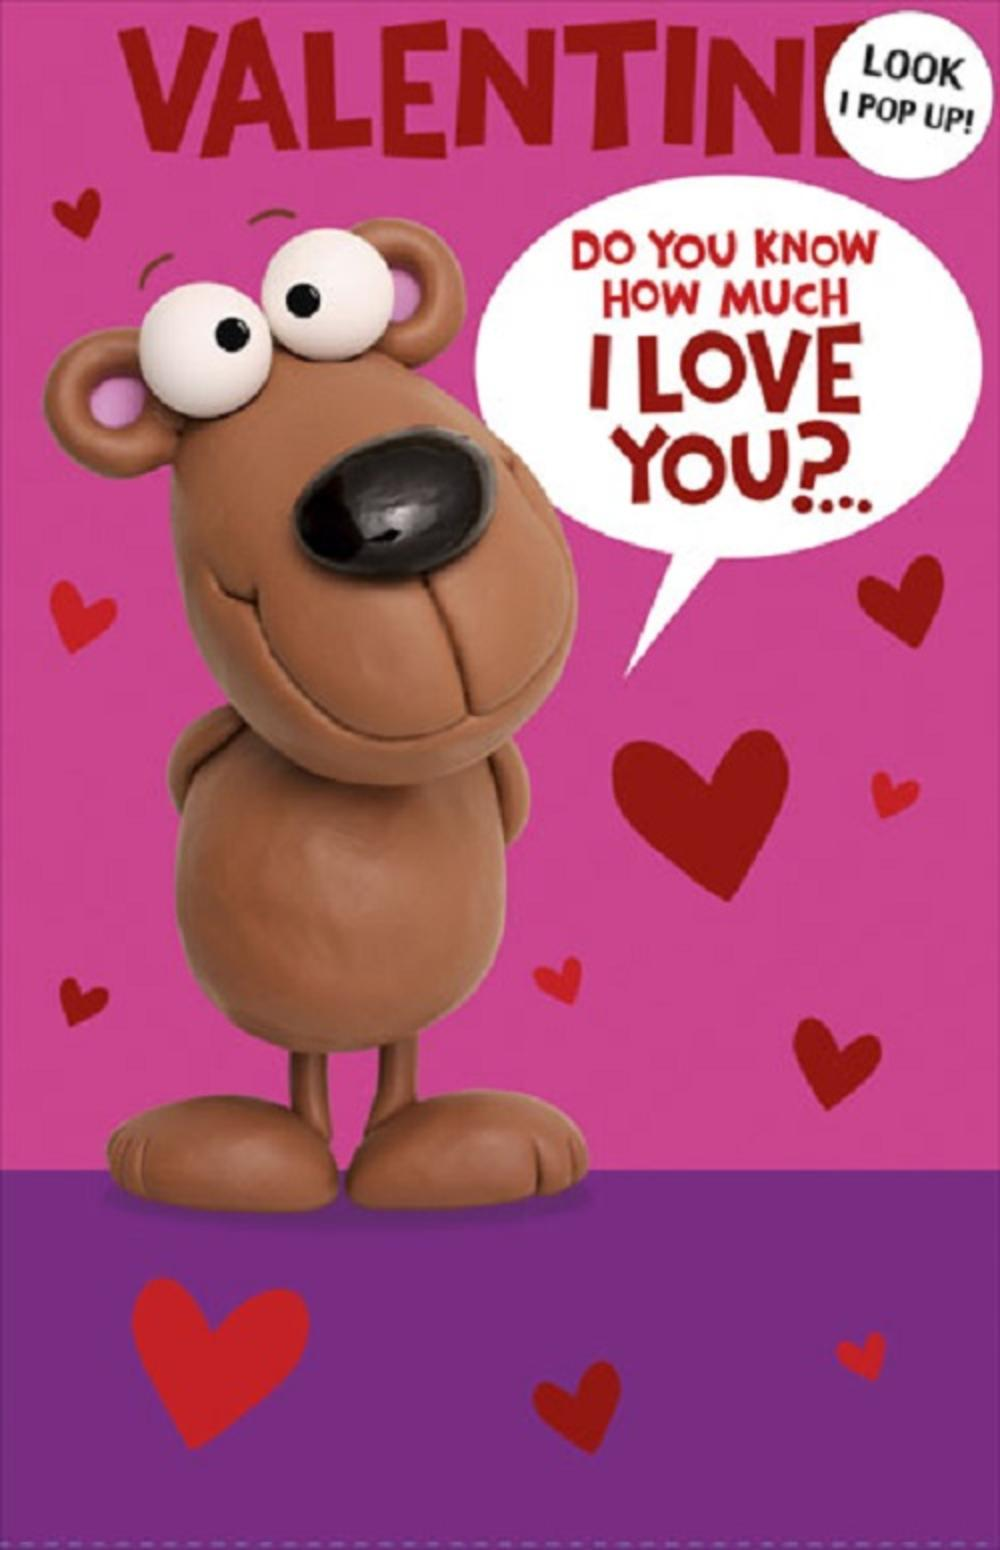 Cute Pop Out Valentine's Day Card